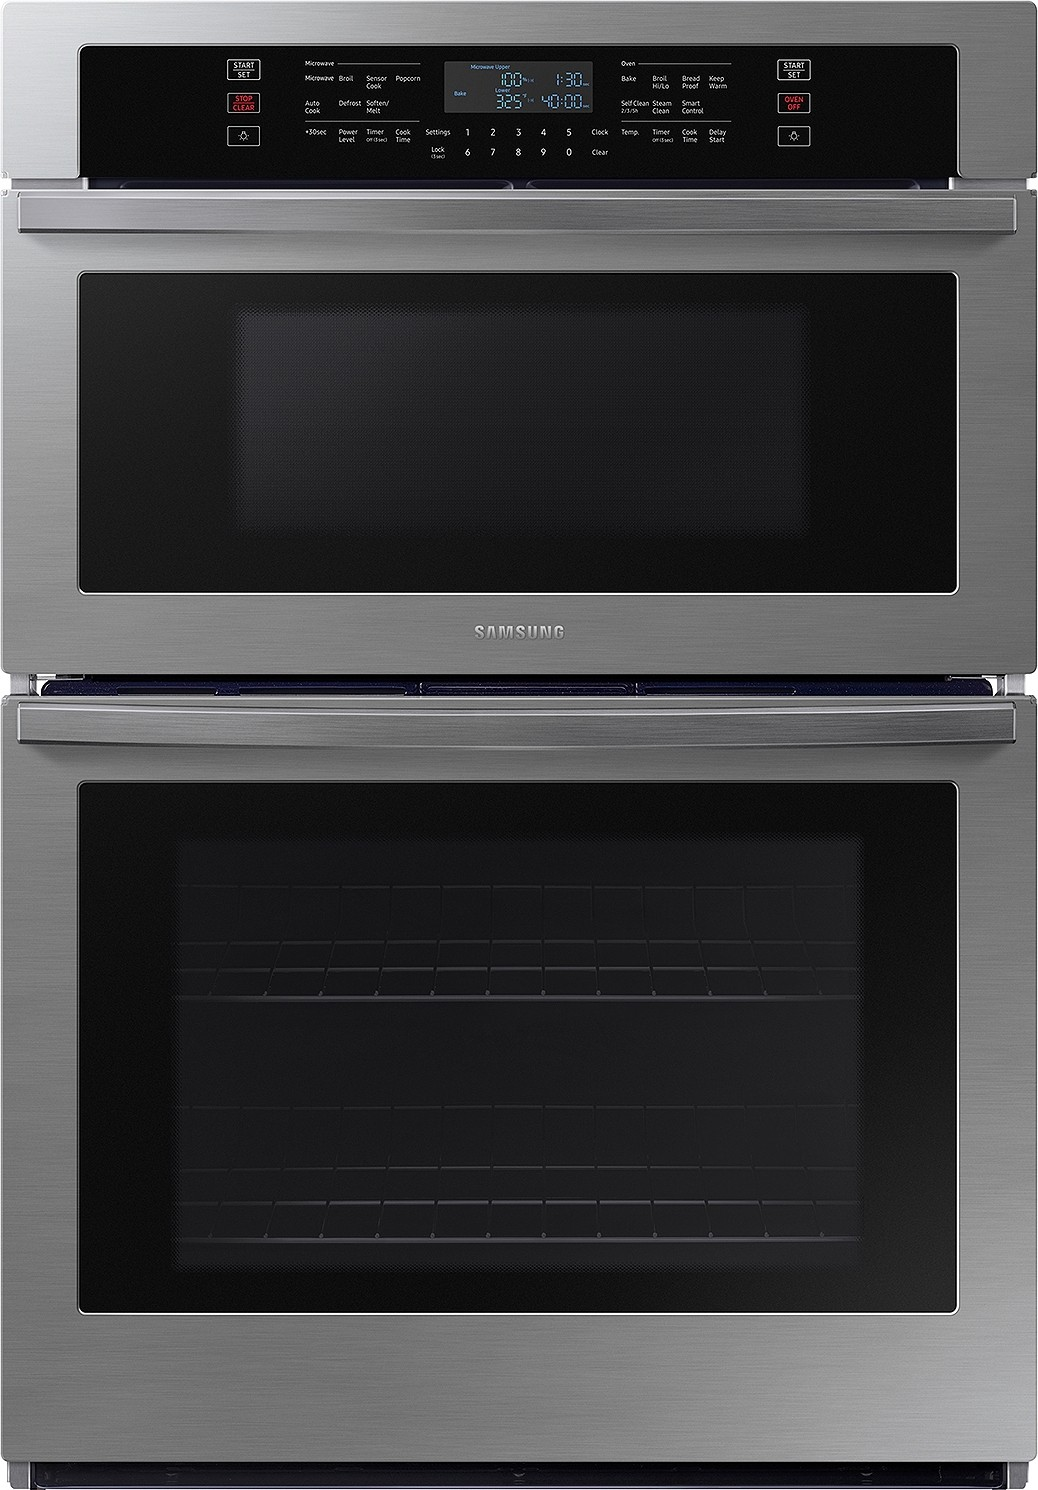 samsung nq70t5511ds 30 wall oven microwave combination stainless steel